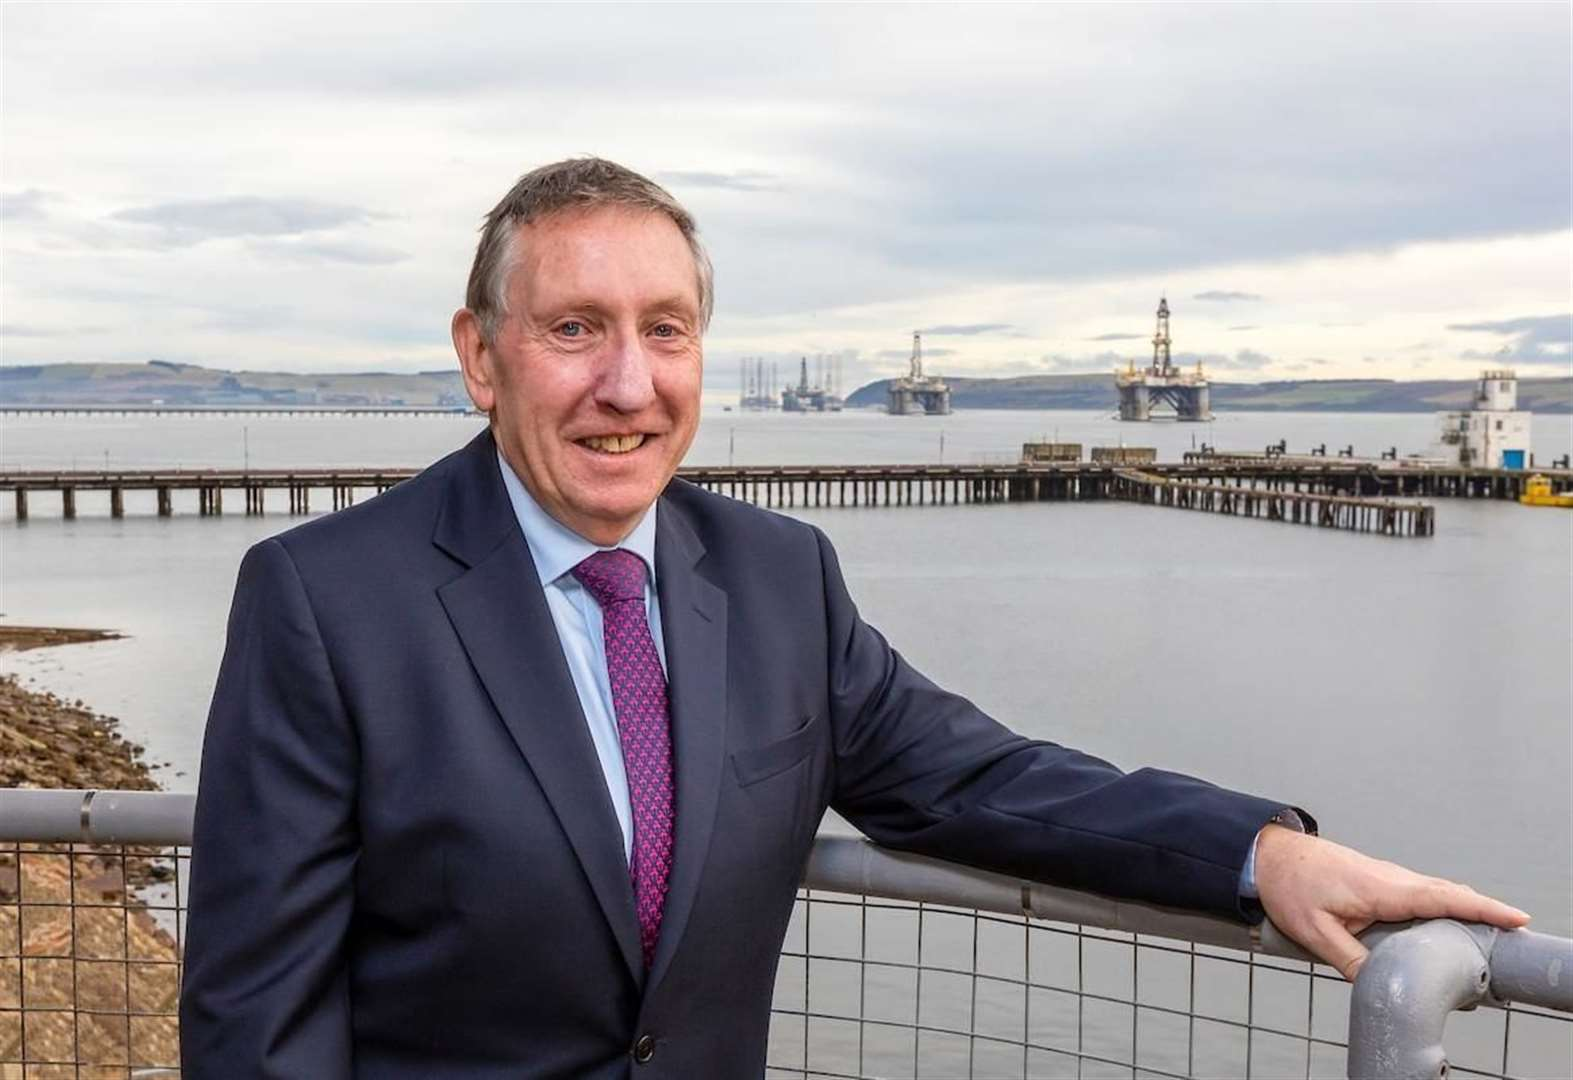 Port of Cromarty Firth appoints new chair and two new members to its board